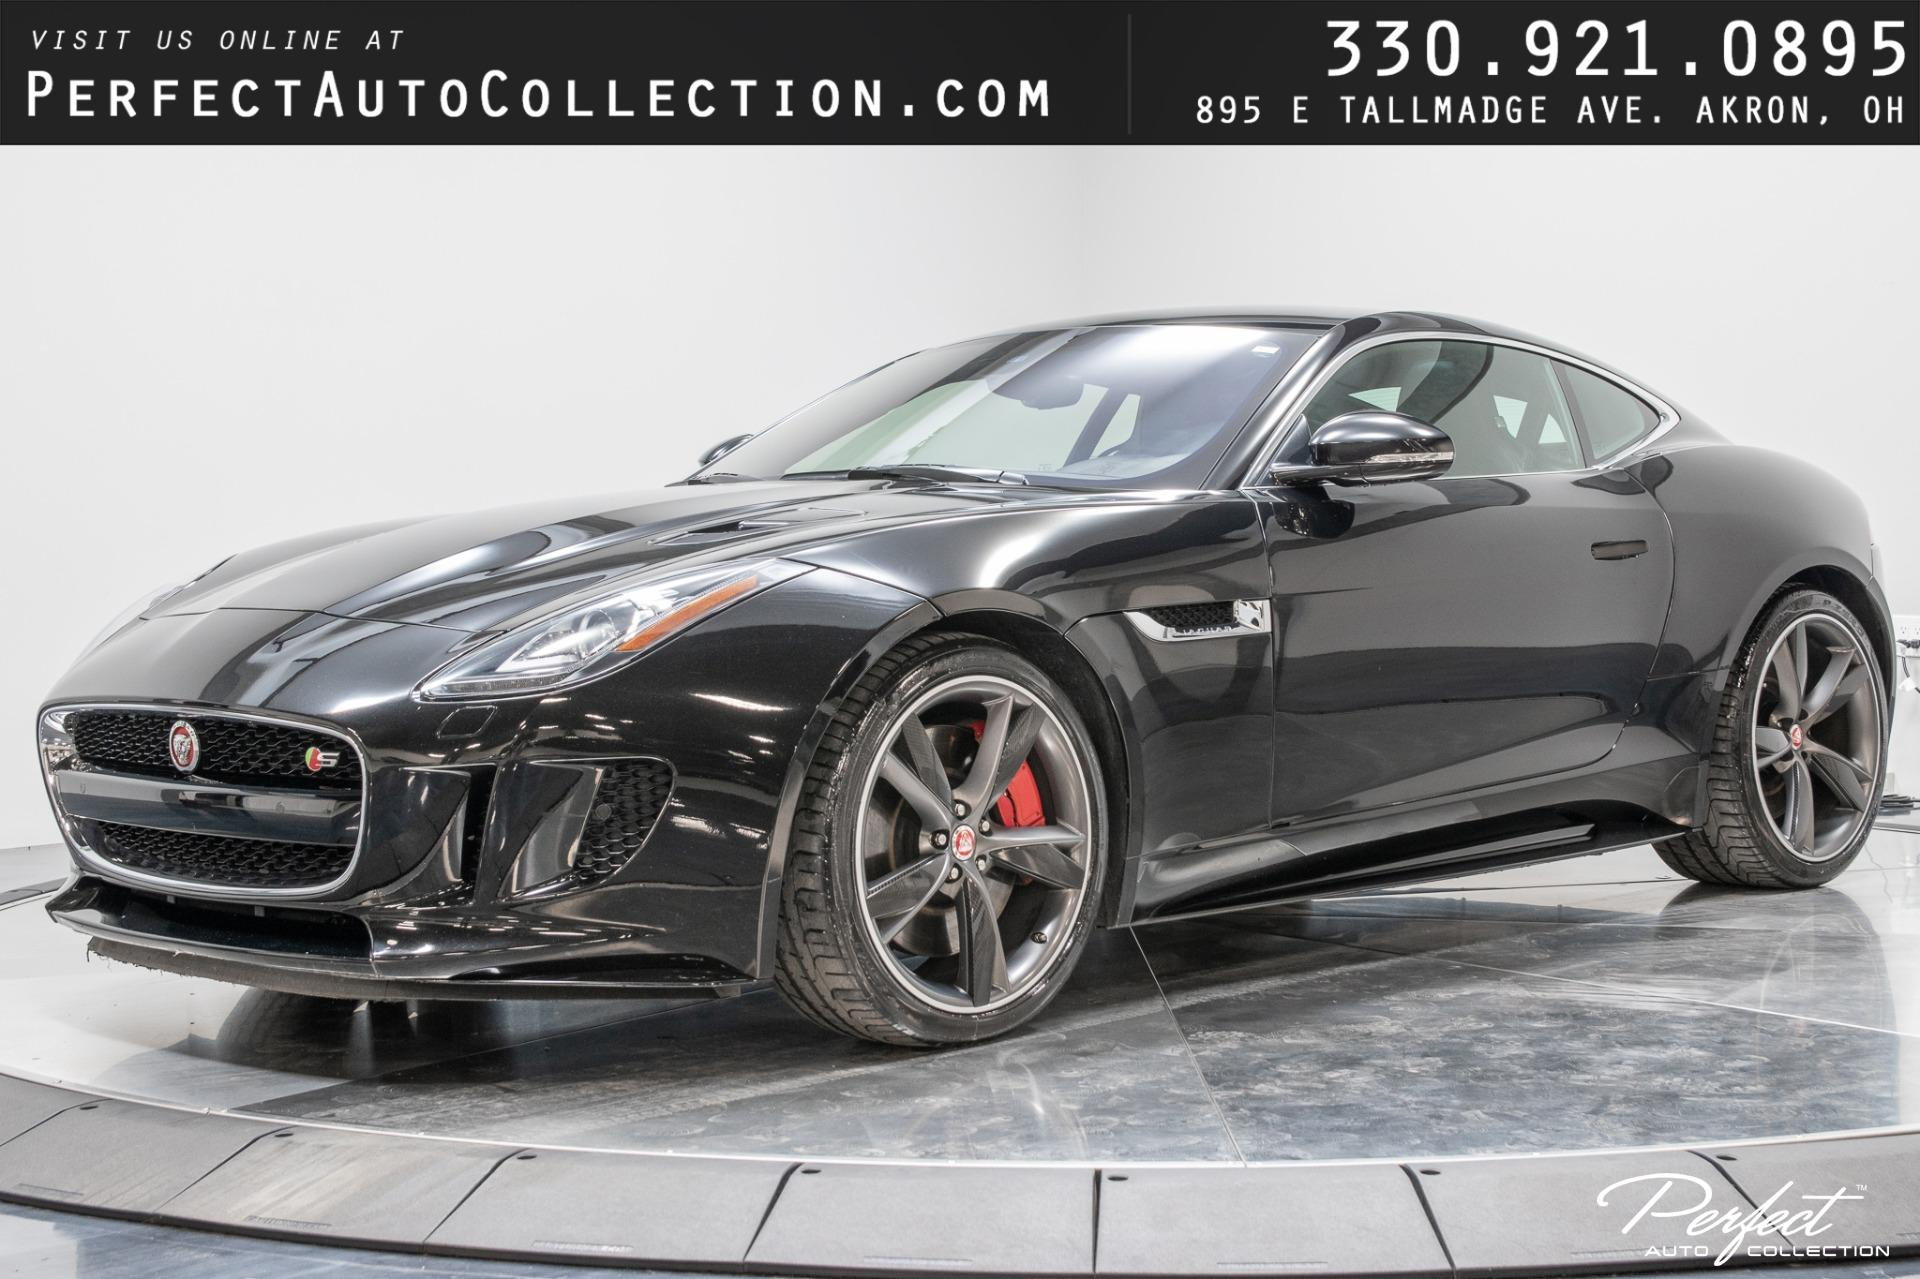 Used 2017 Jaguar F-TYPE S for sale $48,793 at Perfect Auto Collection in Akron OH 44310 1